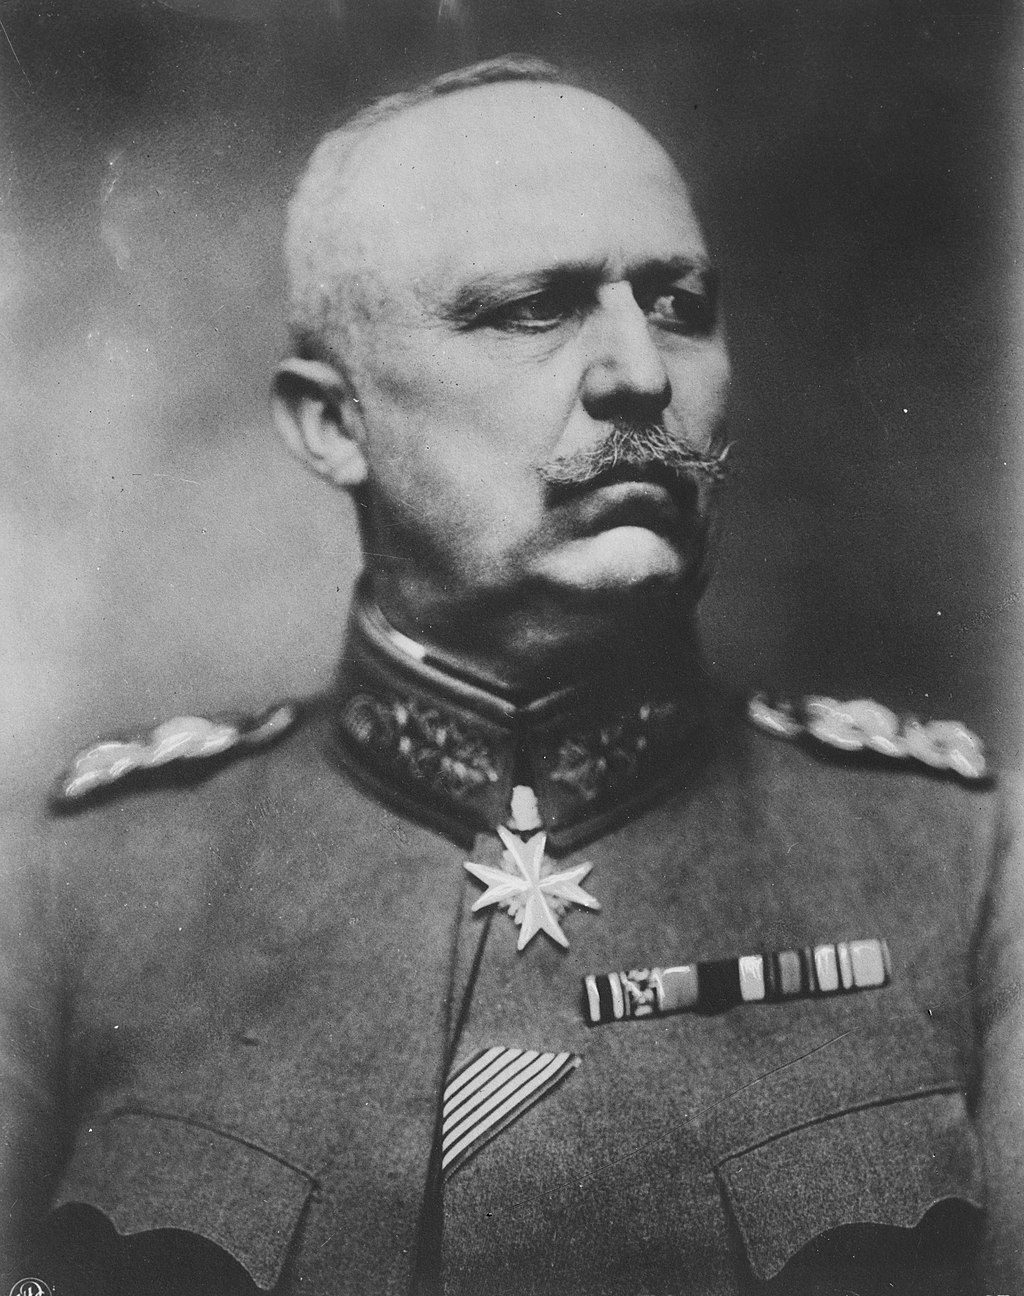 https://upload.wikimedia.org/wikipedia/commons/thumb/a/ad/Erich_Ludendorff.jpg/1024px-Erich_Ludendorff.jpg